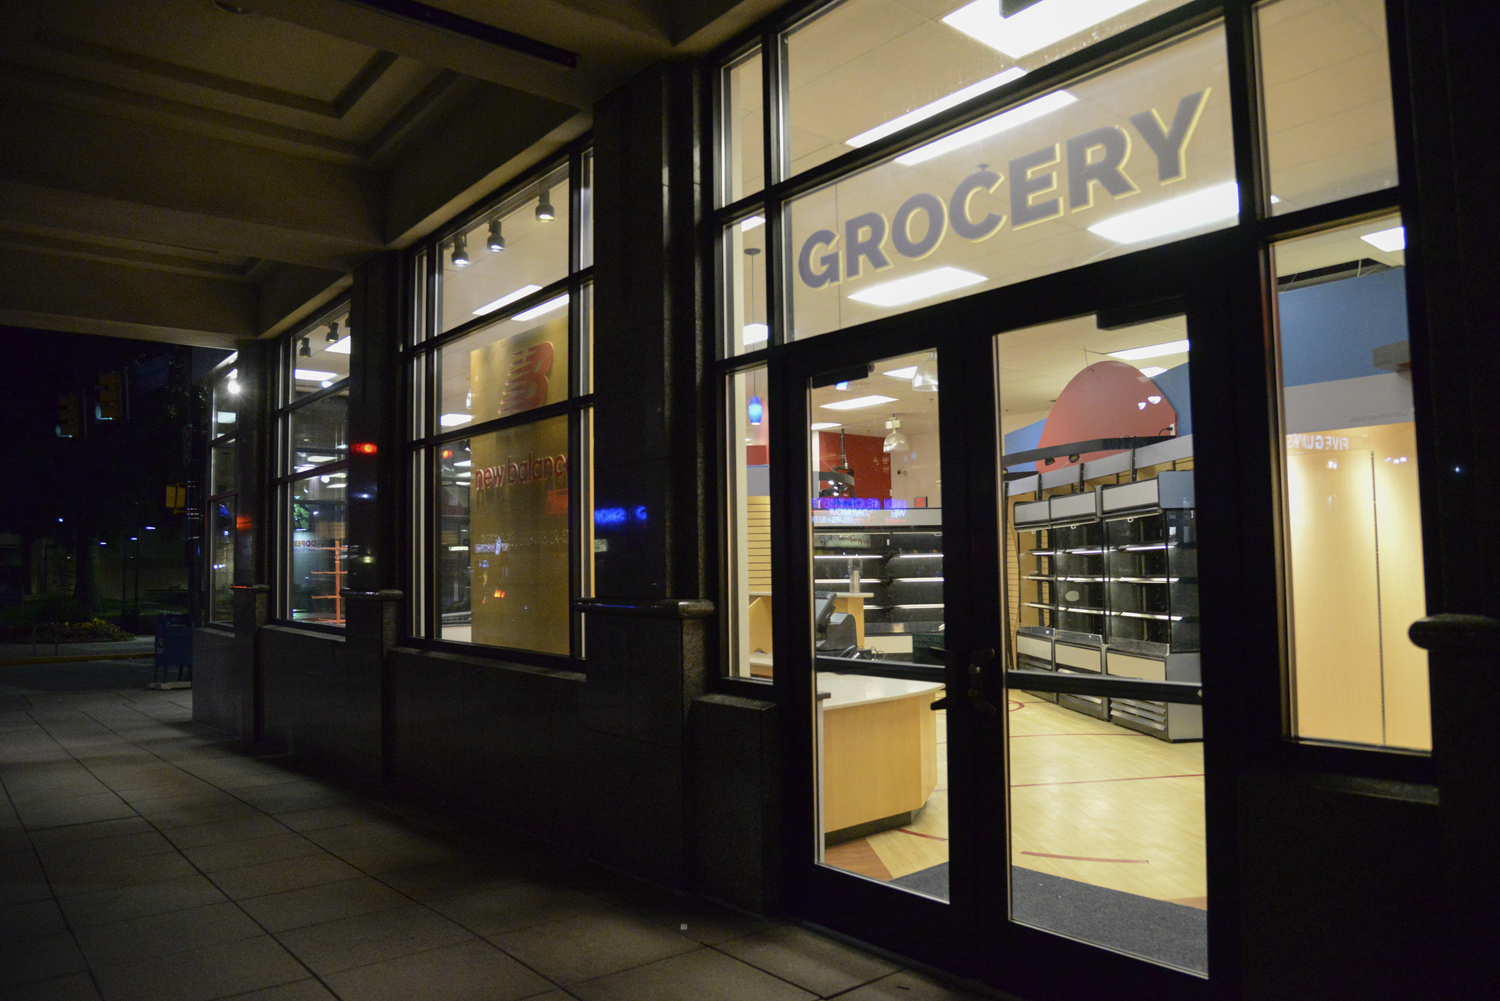 Pitt will open a pop-up grocery store in the old New Balance storefront at 3810 Forbes Ave. on Sept. 24.